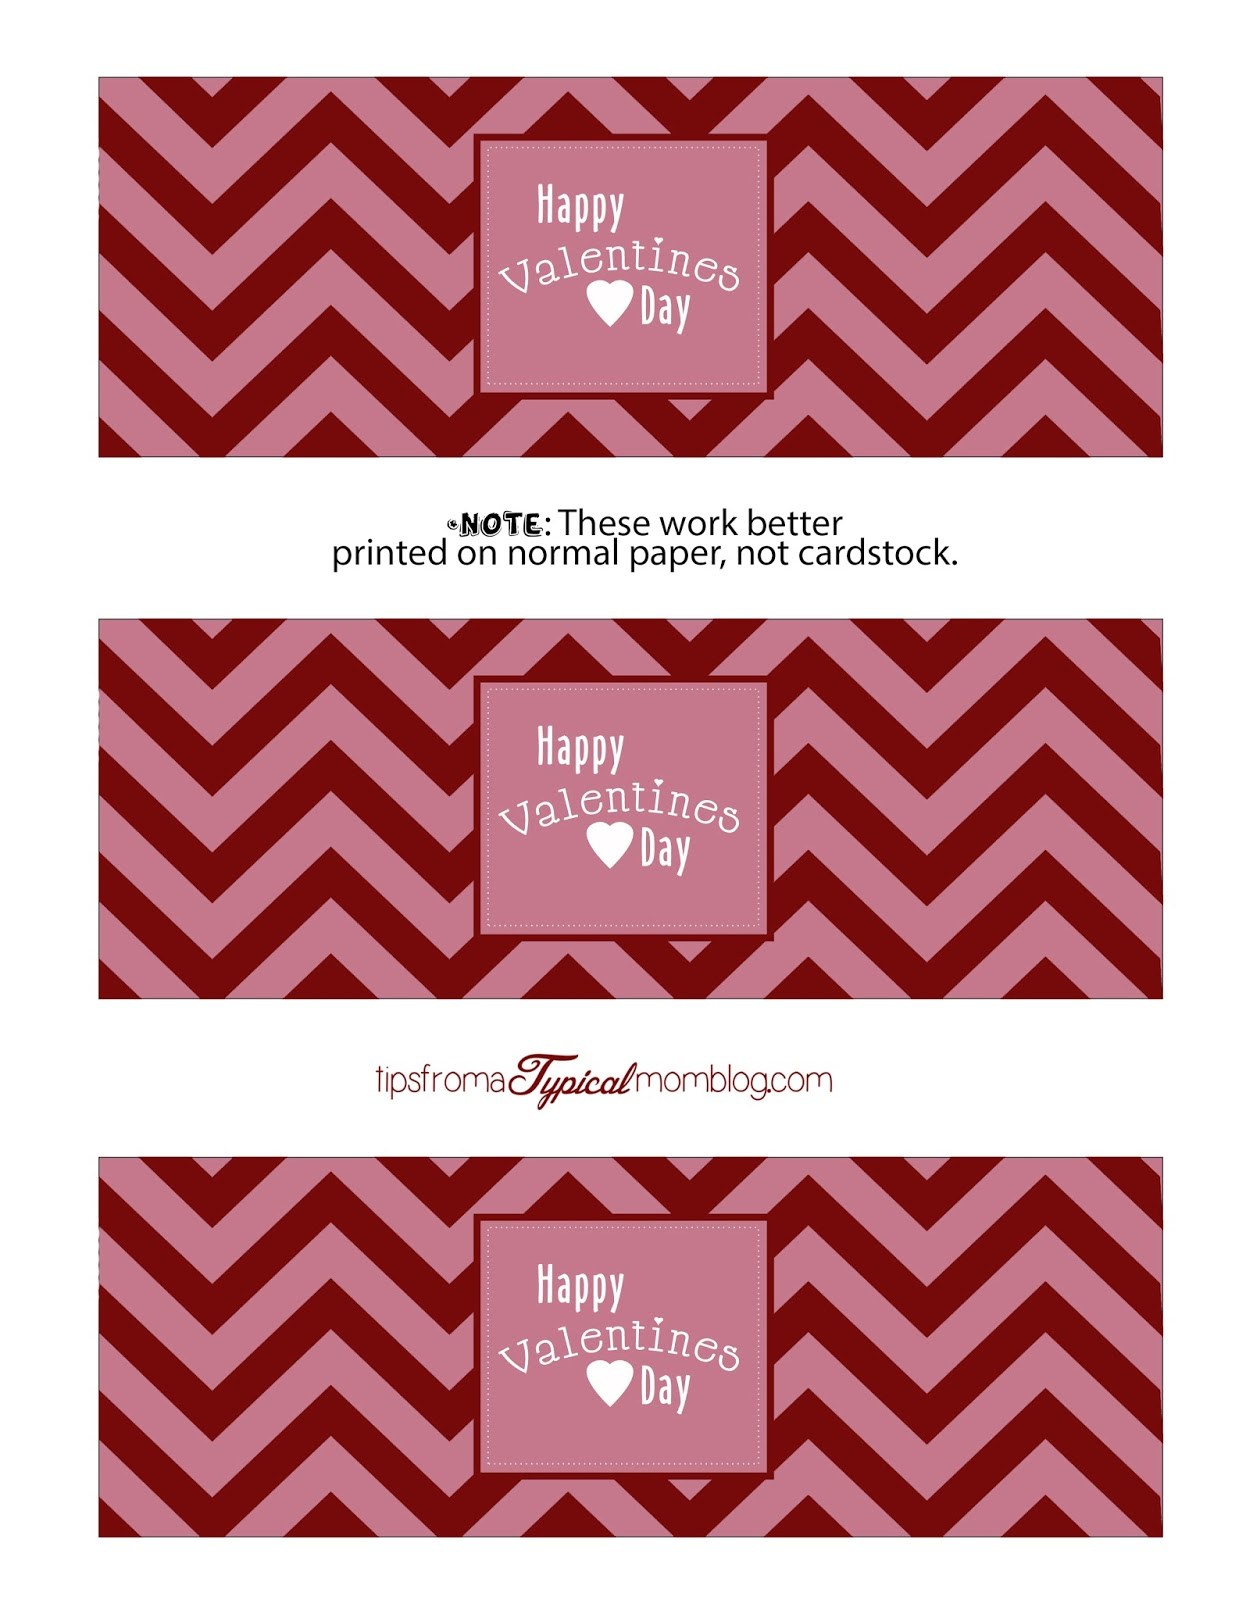 Valentines Day water bottle label free printables.